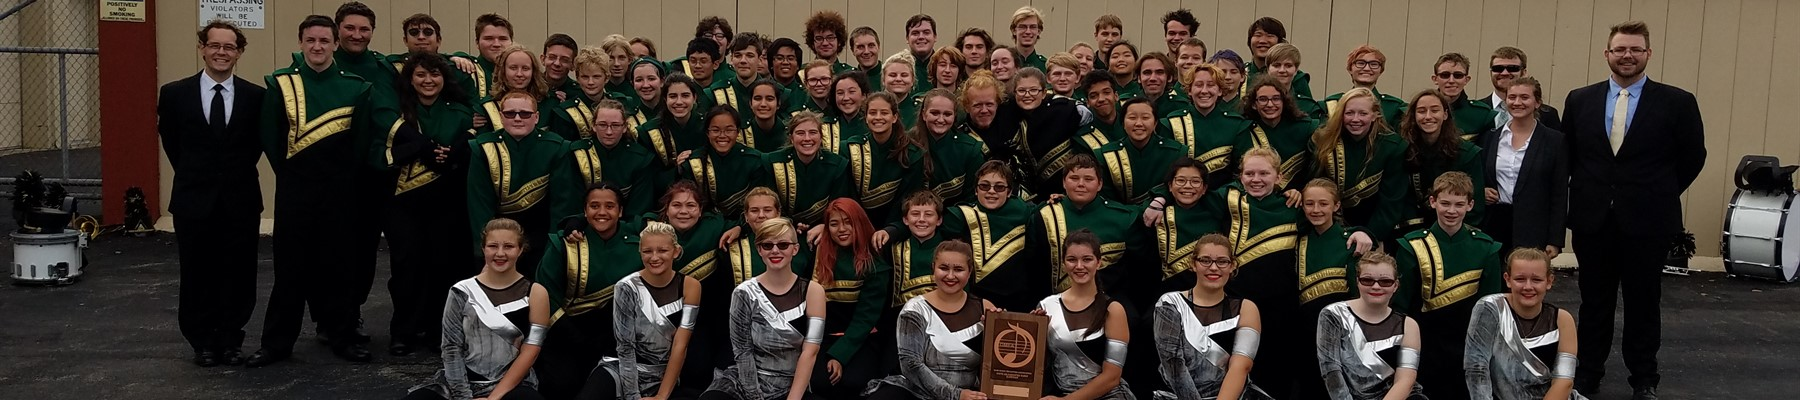 Marching Green & Gold Earns Superior Rating at OMEA State Finals